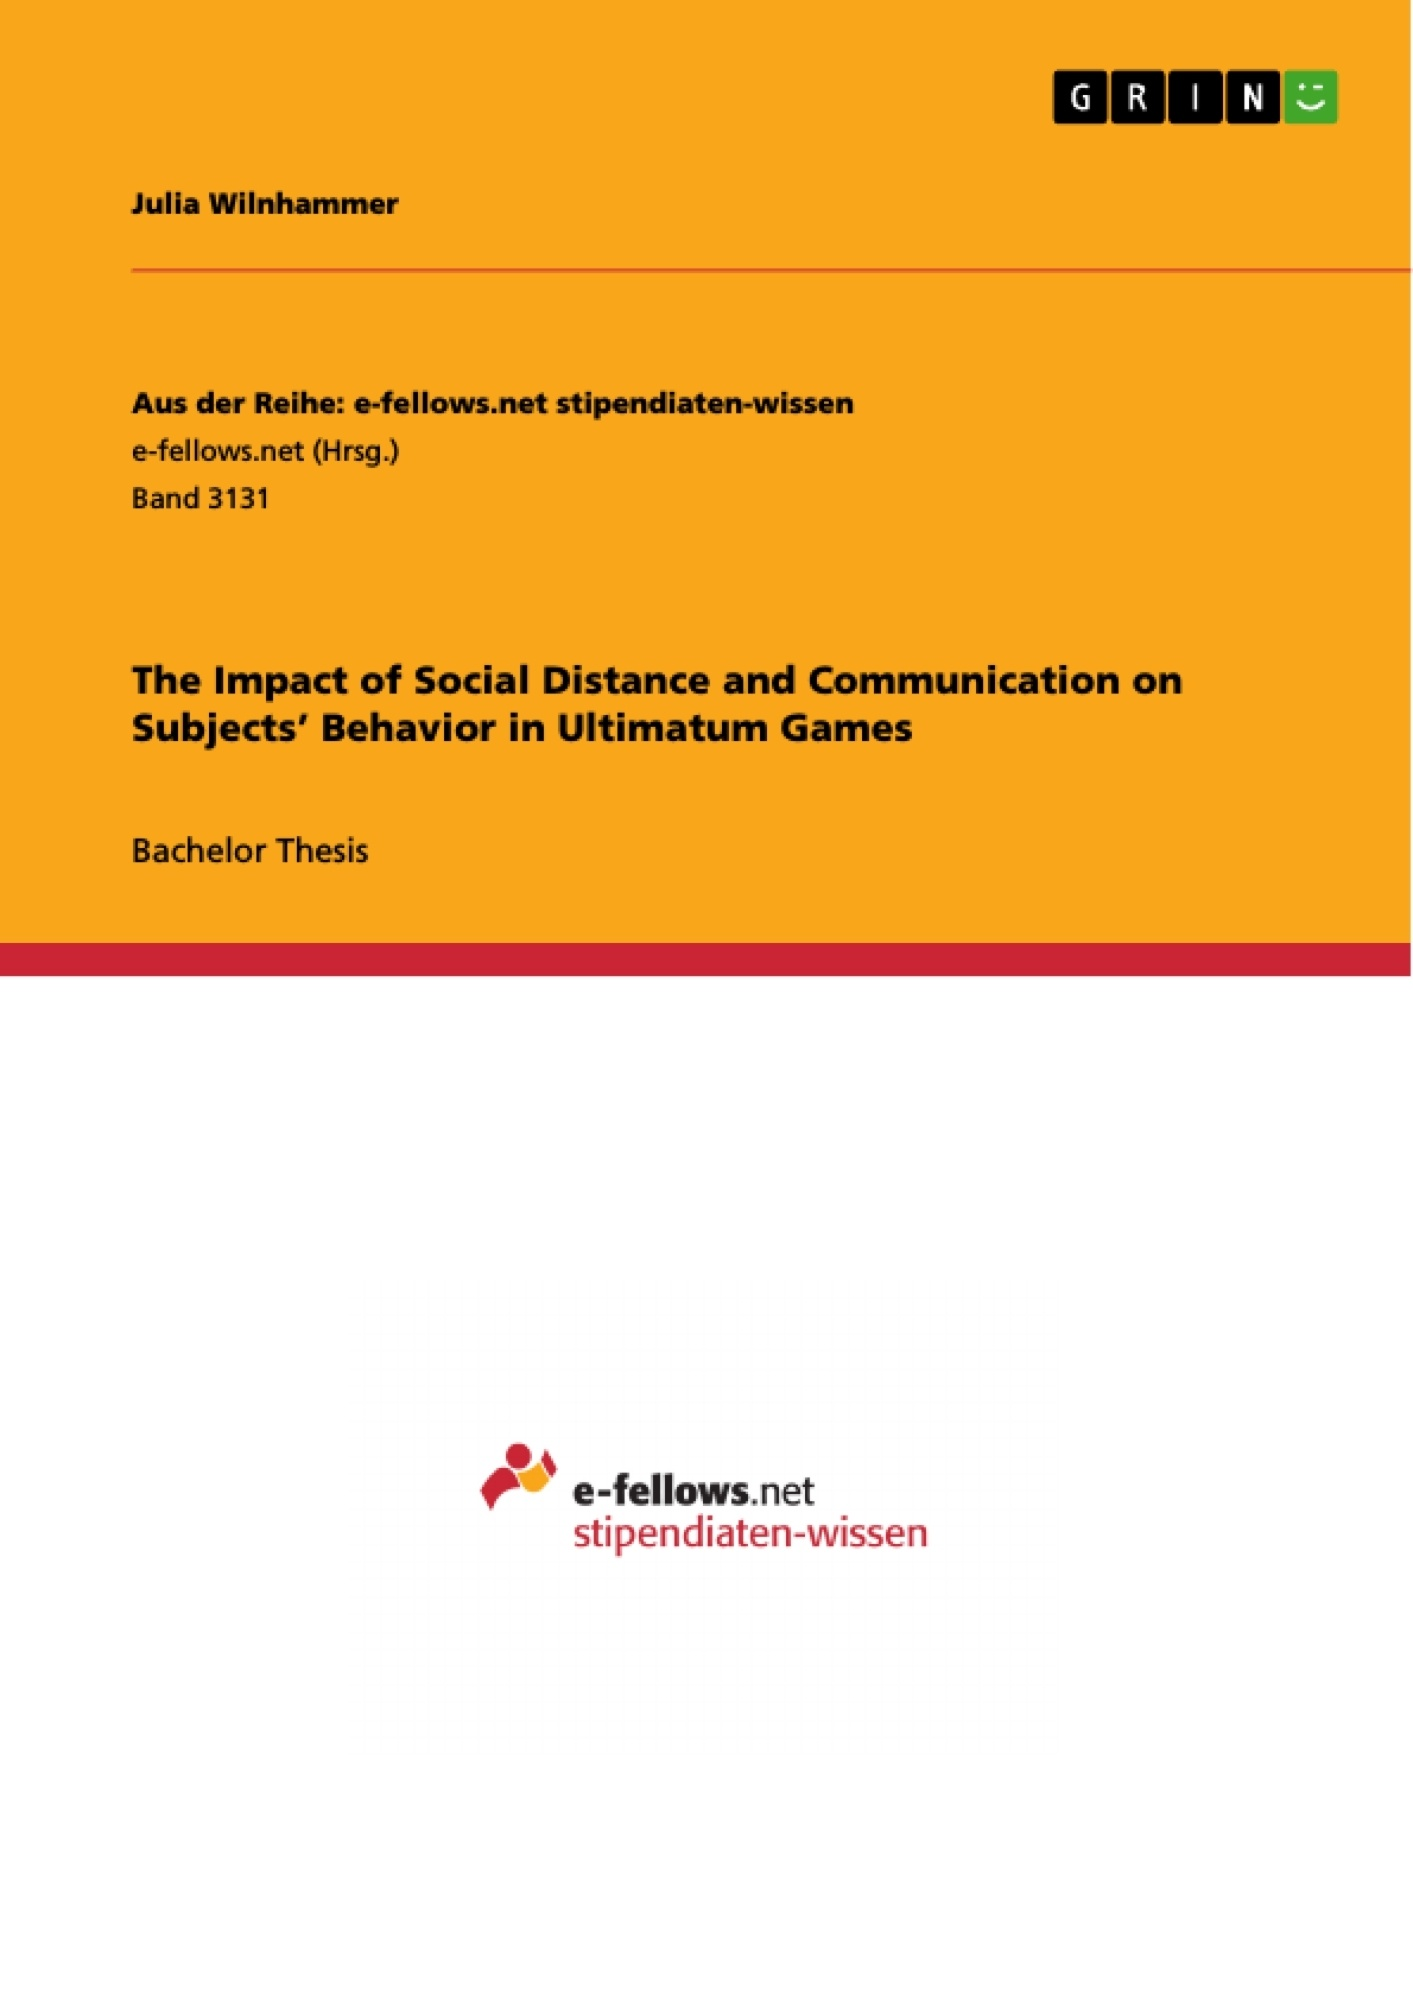 Title: The Impact of Social Distance and Communication on Subjects' Behavior in Ultimatum Games